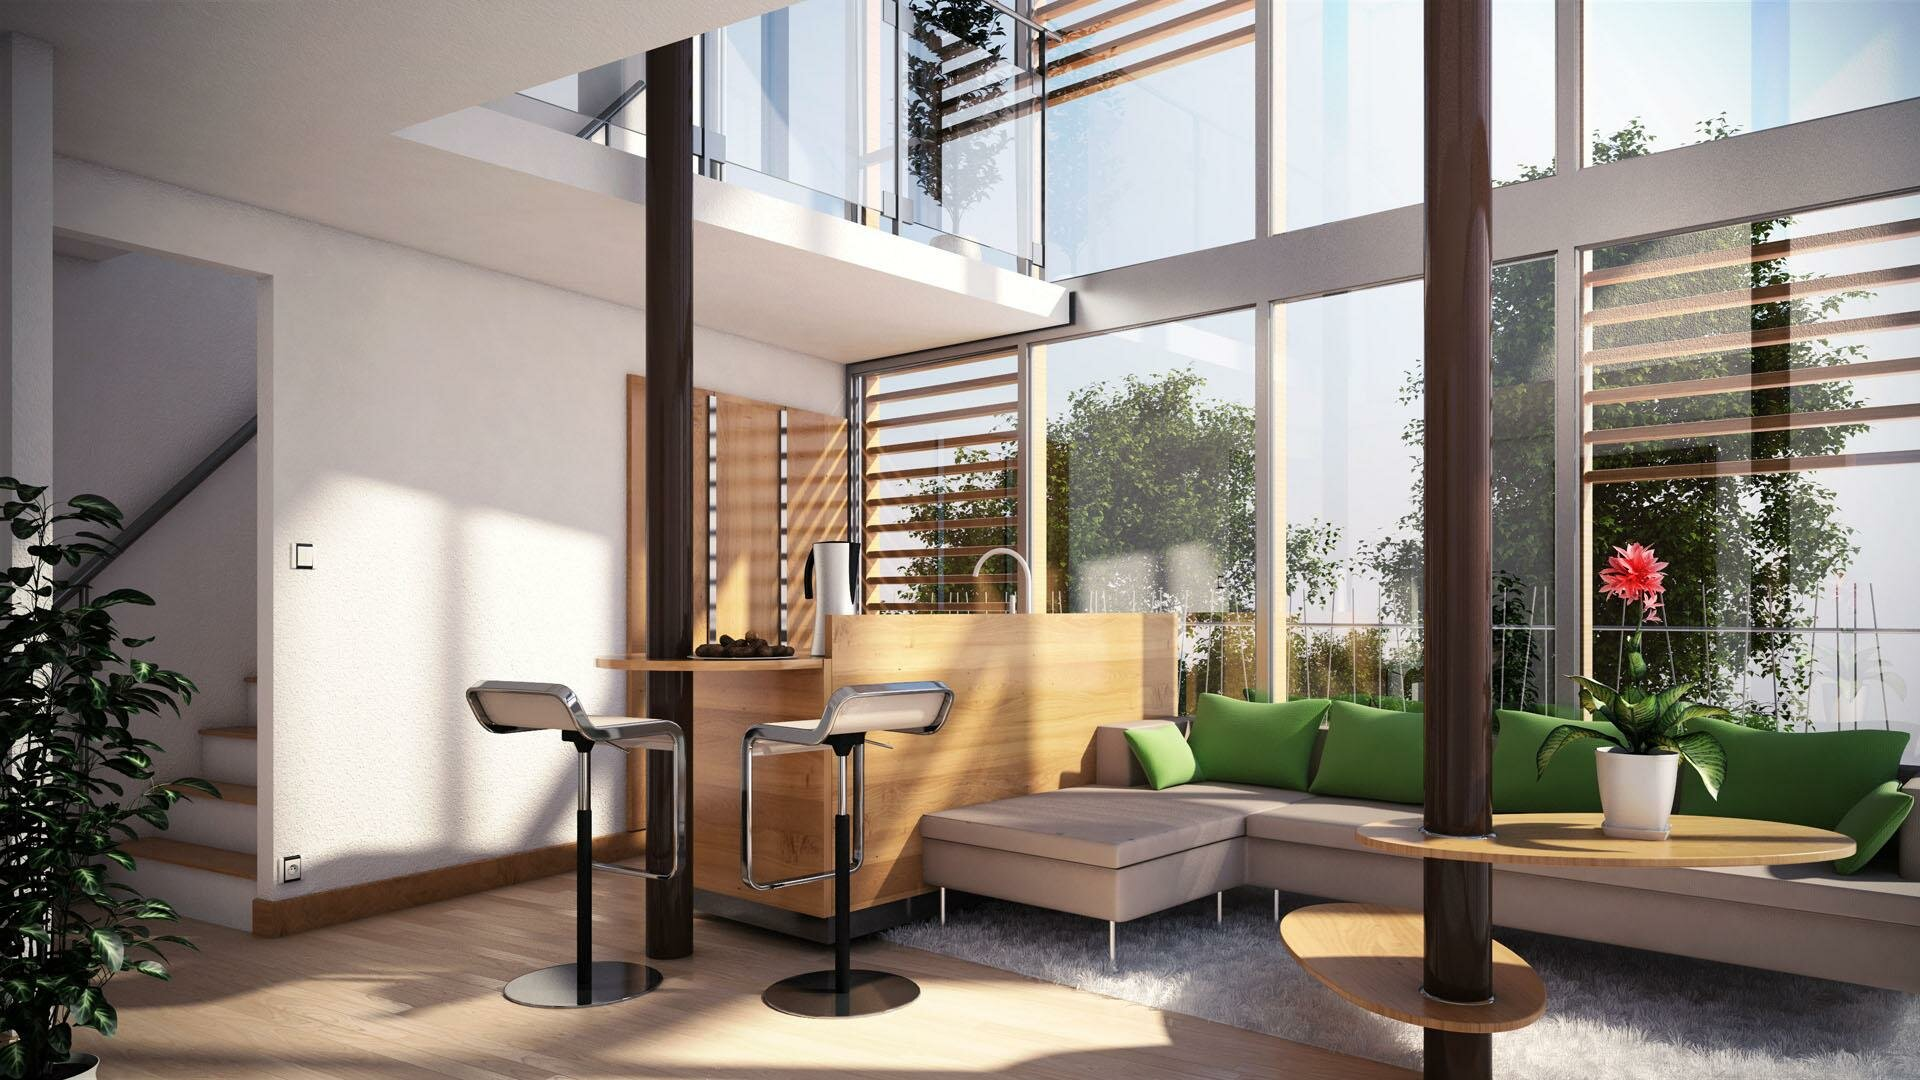 18 Great Home Interior Design Examples Mostbeautifulthings